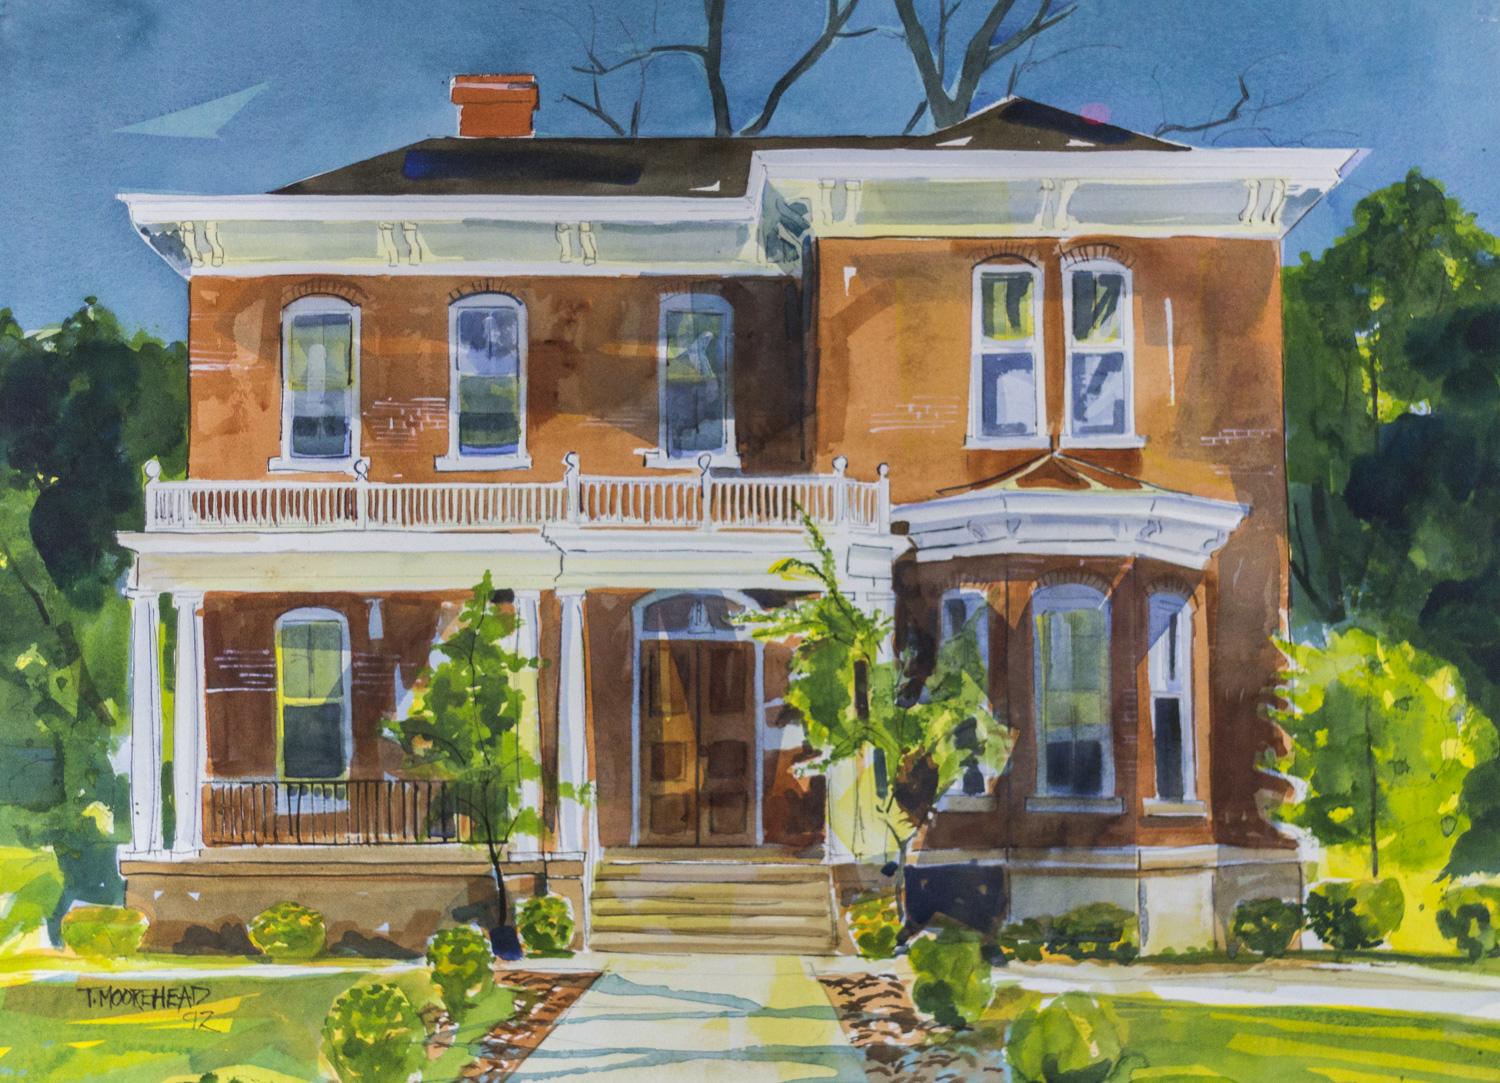 The President's Home by Tommy Moorehead, Watercolor on Paper